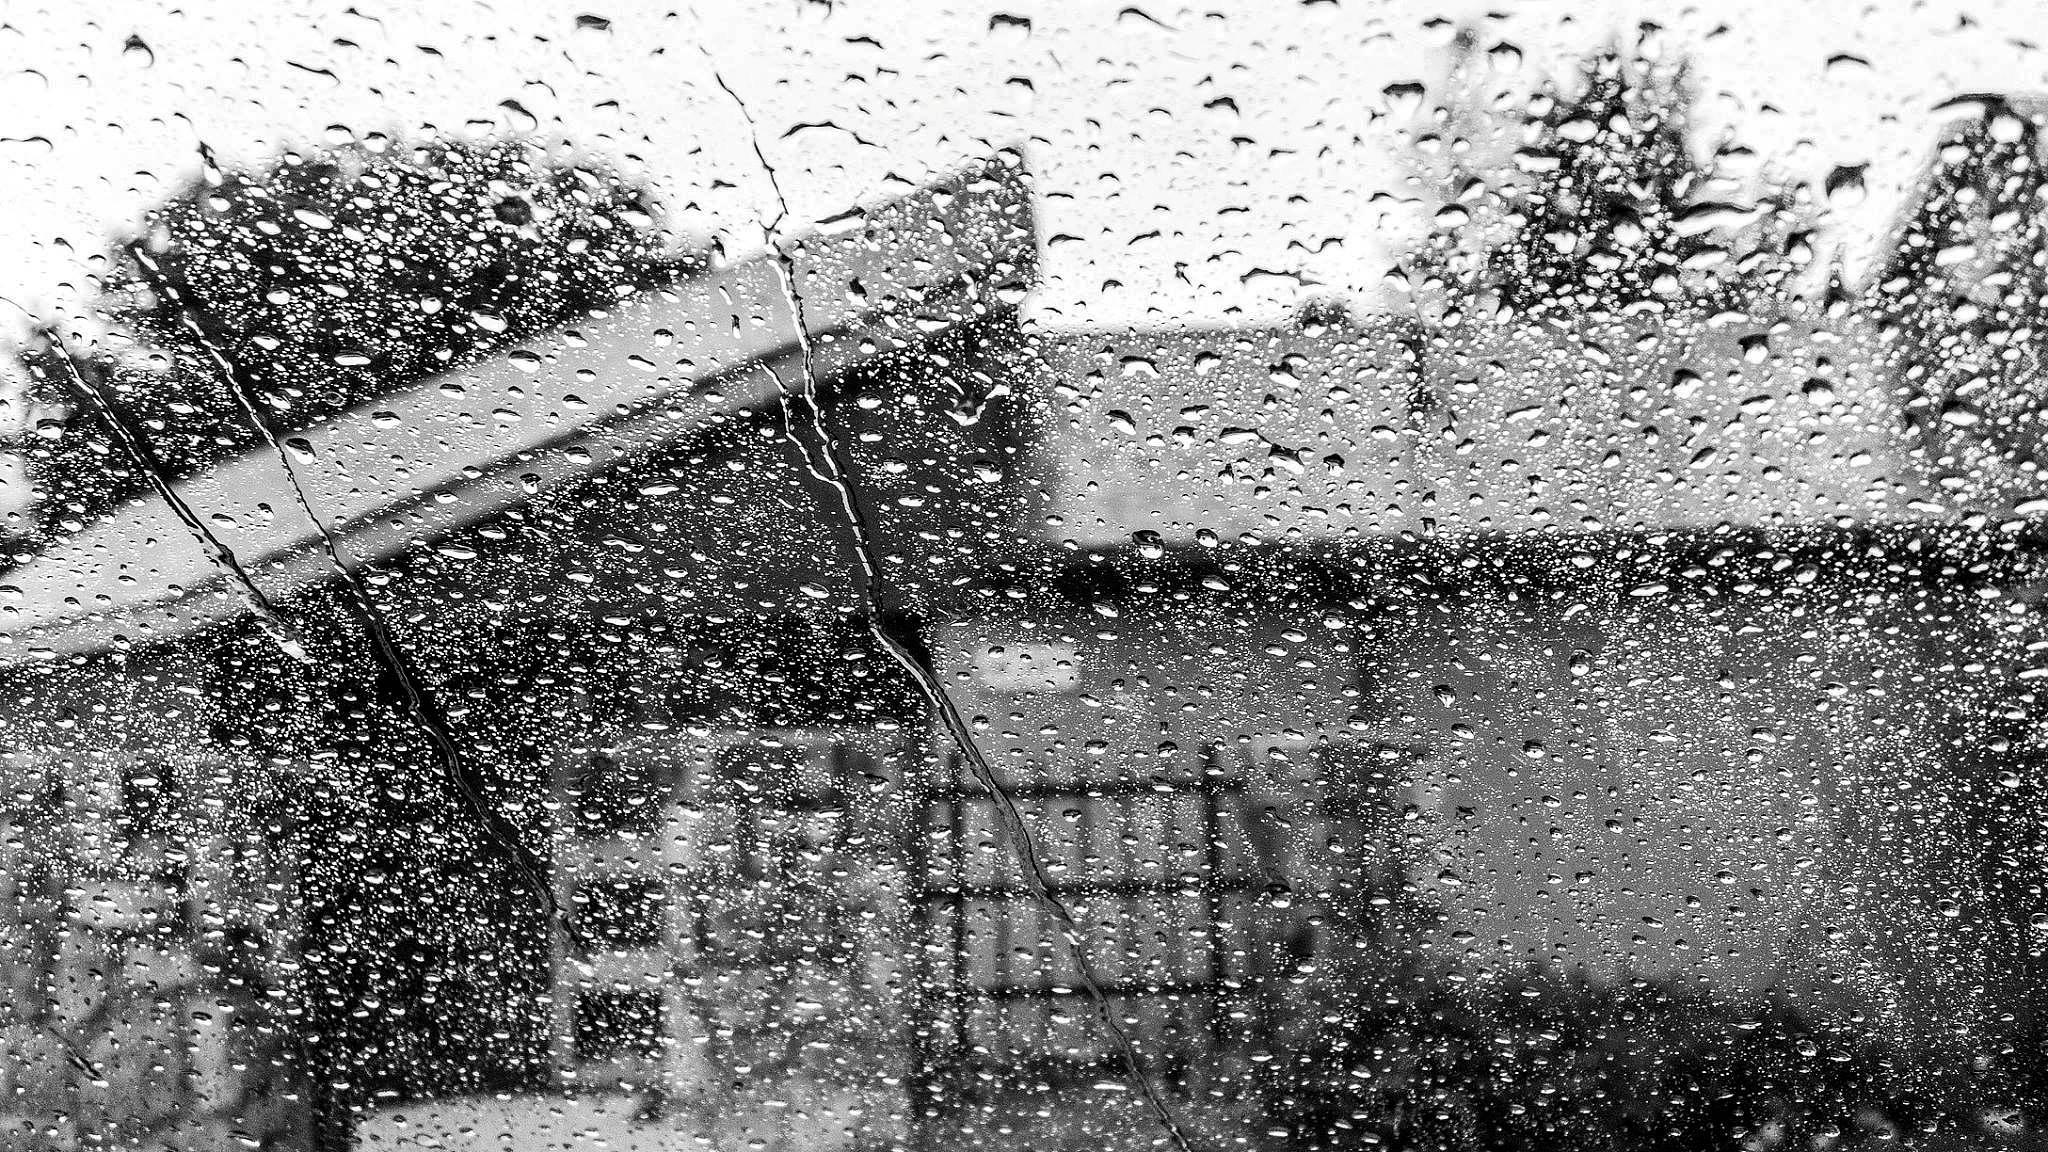 Rain Came by Lynette M. Feliciano-Justice